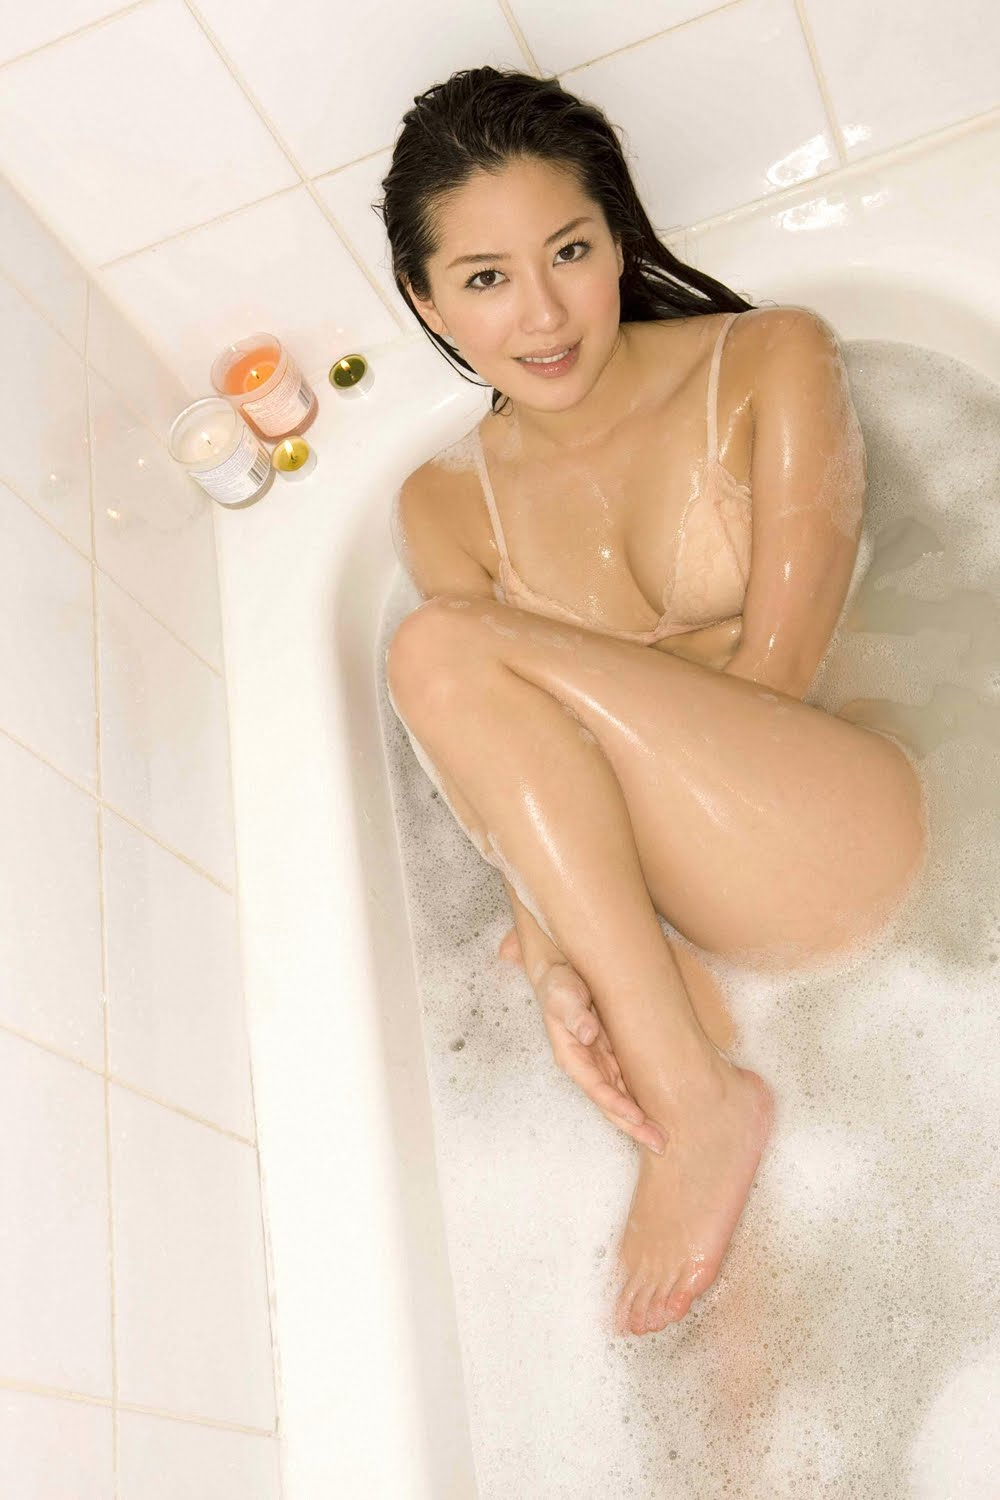 hot japanese girl taking nude bath in shower